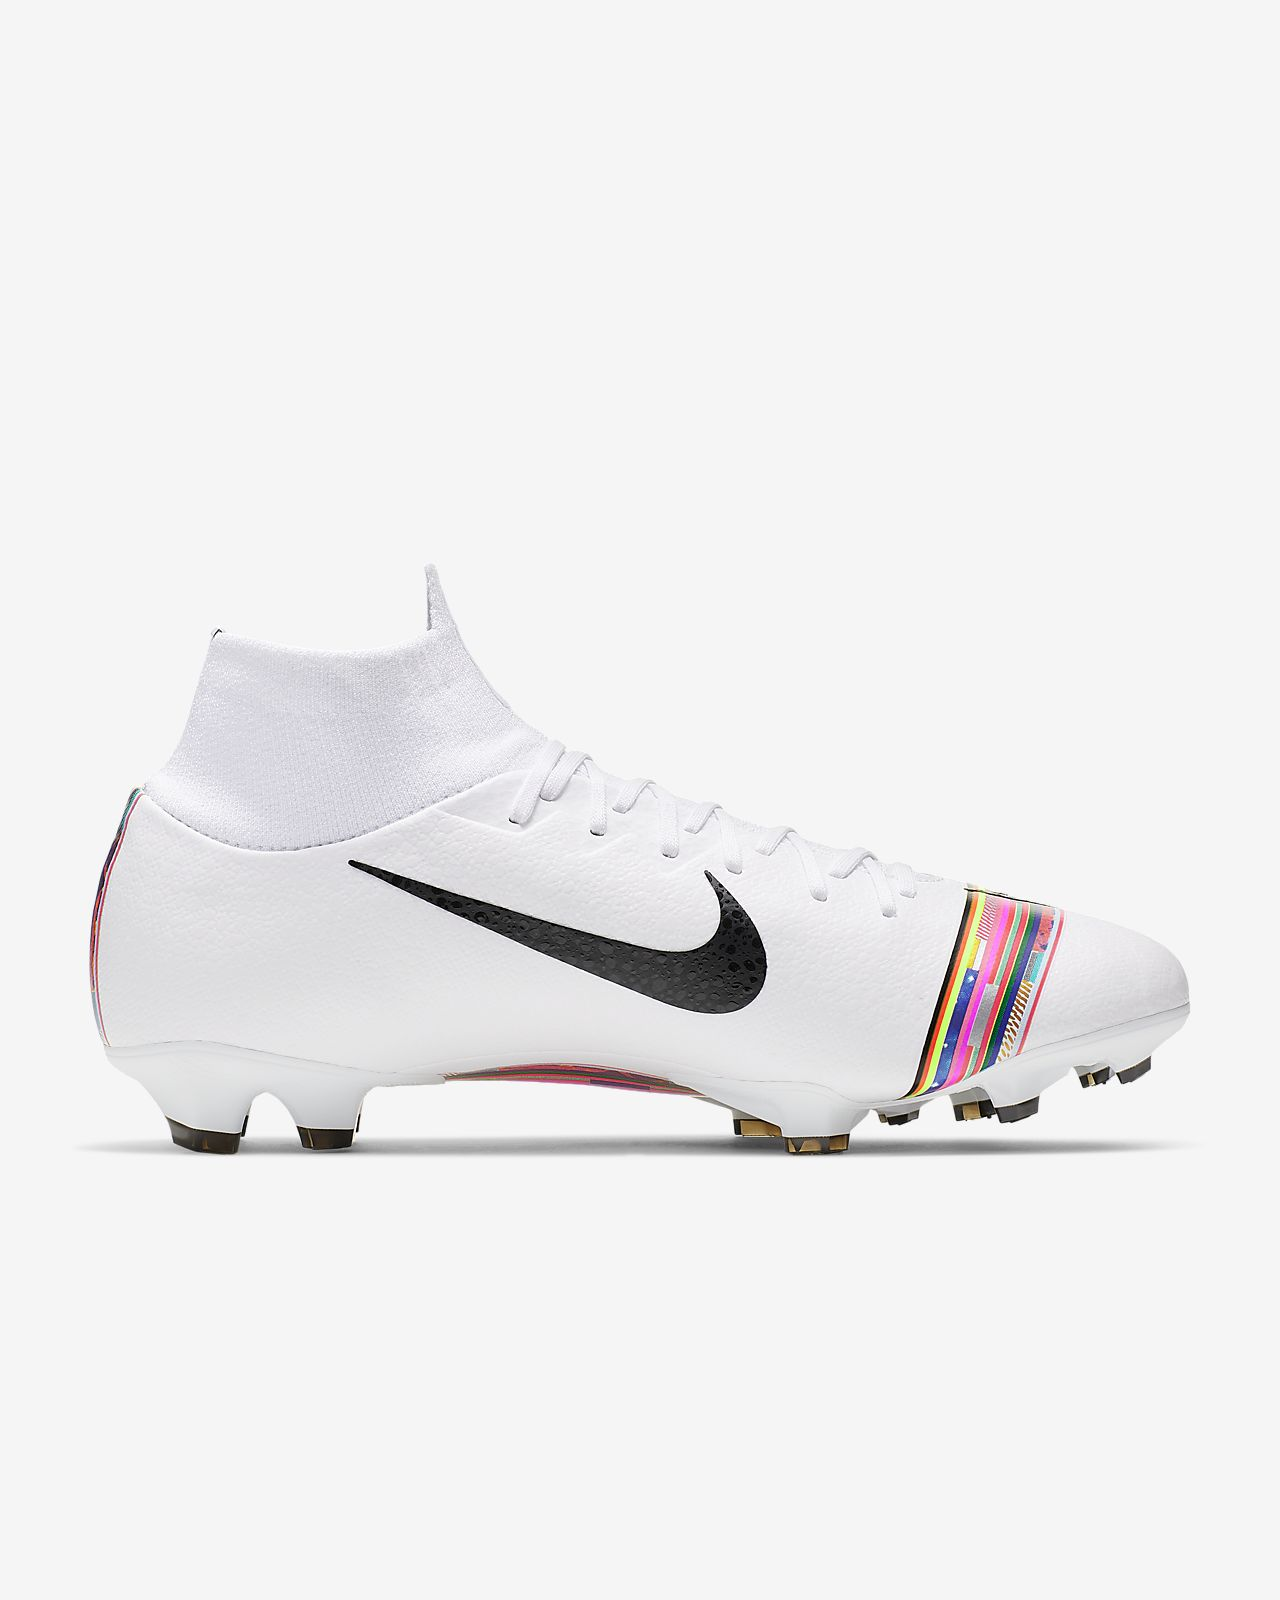 reputable site f5403 78654 ... Nike Superfly 6 Pro LVL UP FG Firm-Ground Soccer Cleat